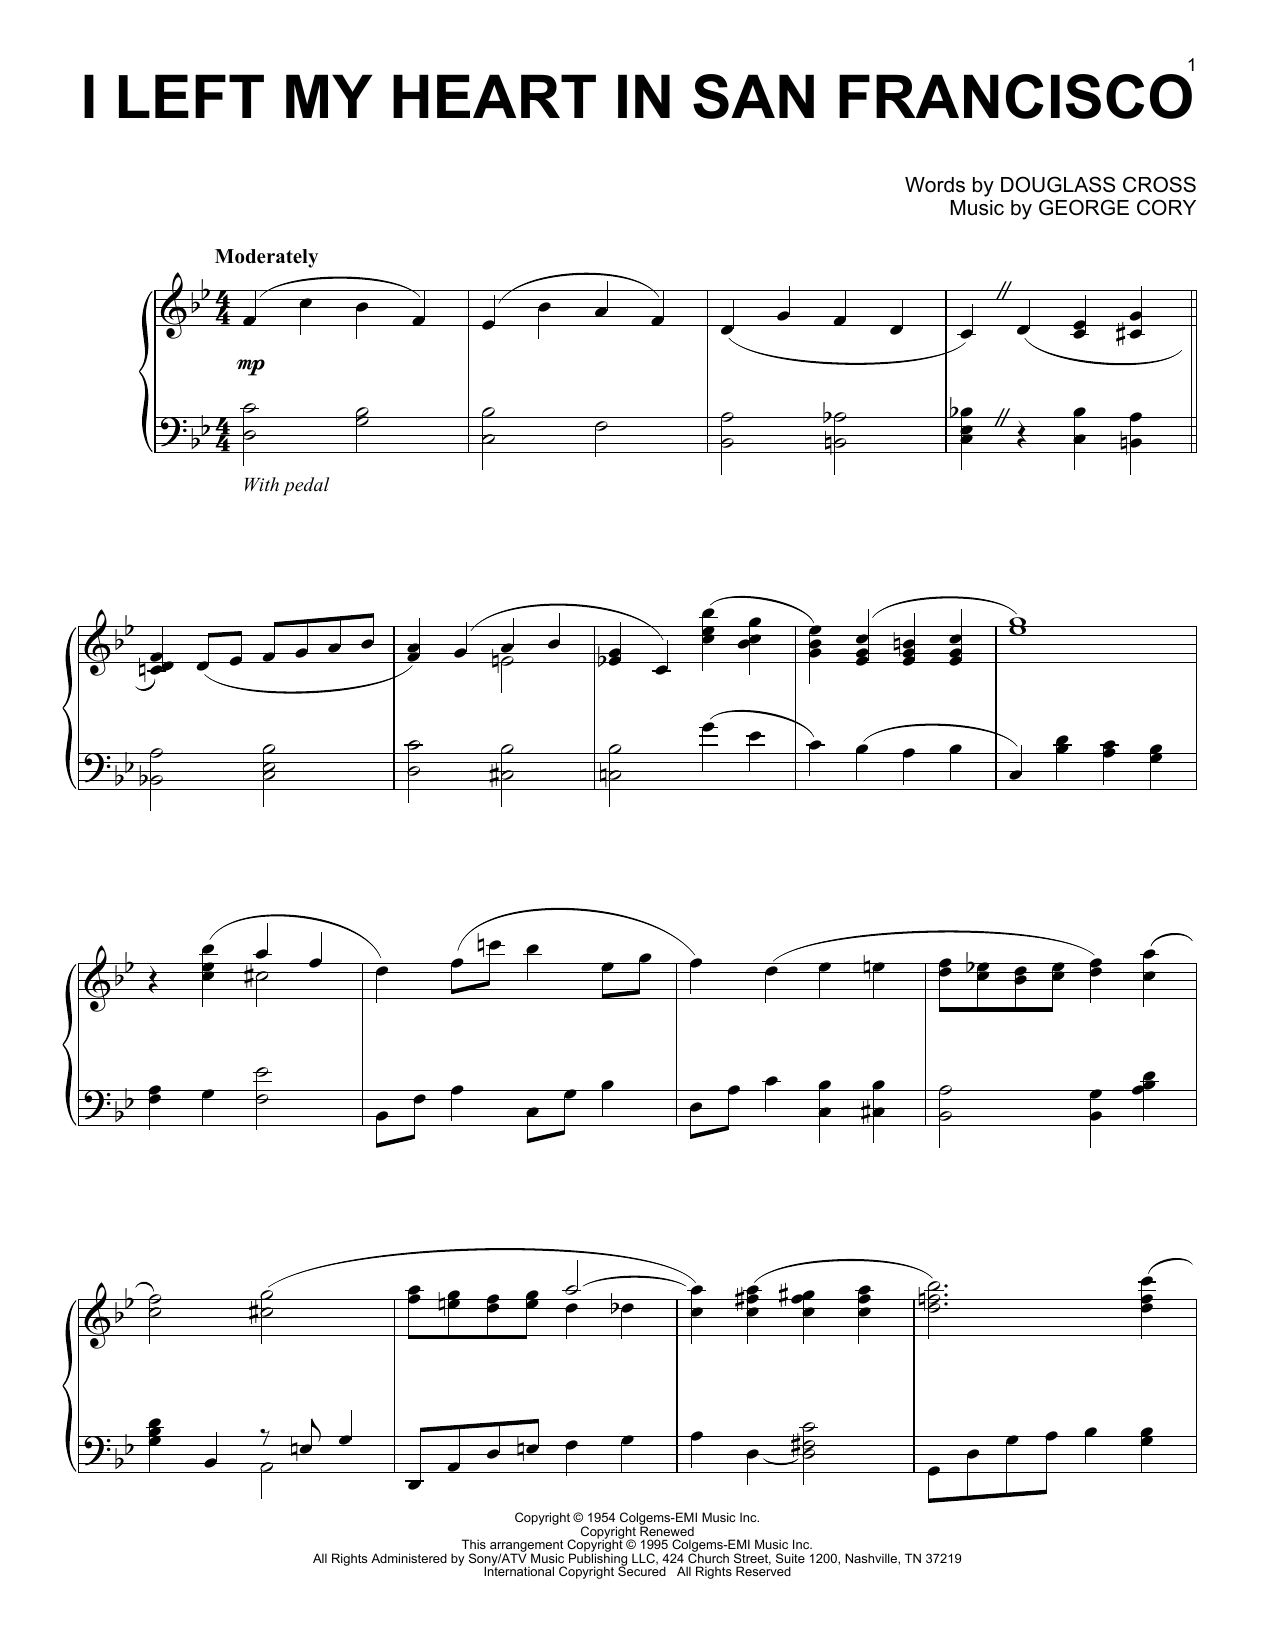 I Left My Heart In San Francisco sheet music for piano solo by George Cory